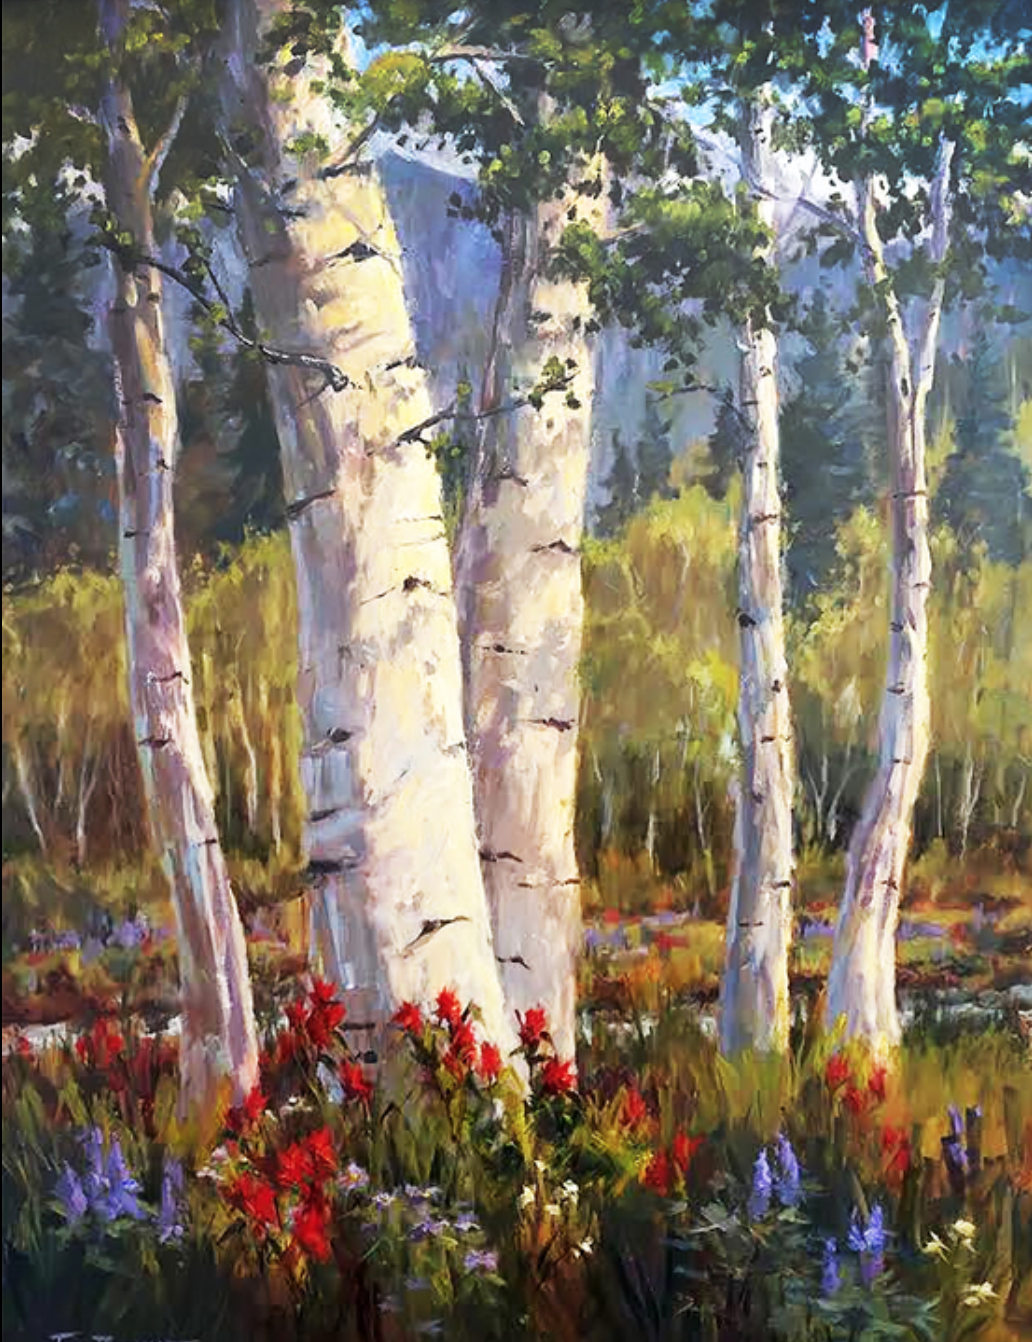 Jan Bushart - http://www.janbushart.comI paint impressionistic oil paintings on location in Colorado and Hawaii. My goal is to capture the light and feeling of a particular place in time. I am the founder of Plein Air Painters of HI.